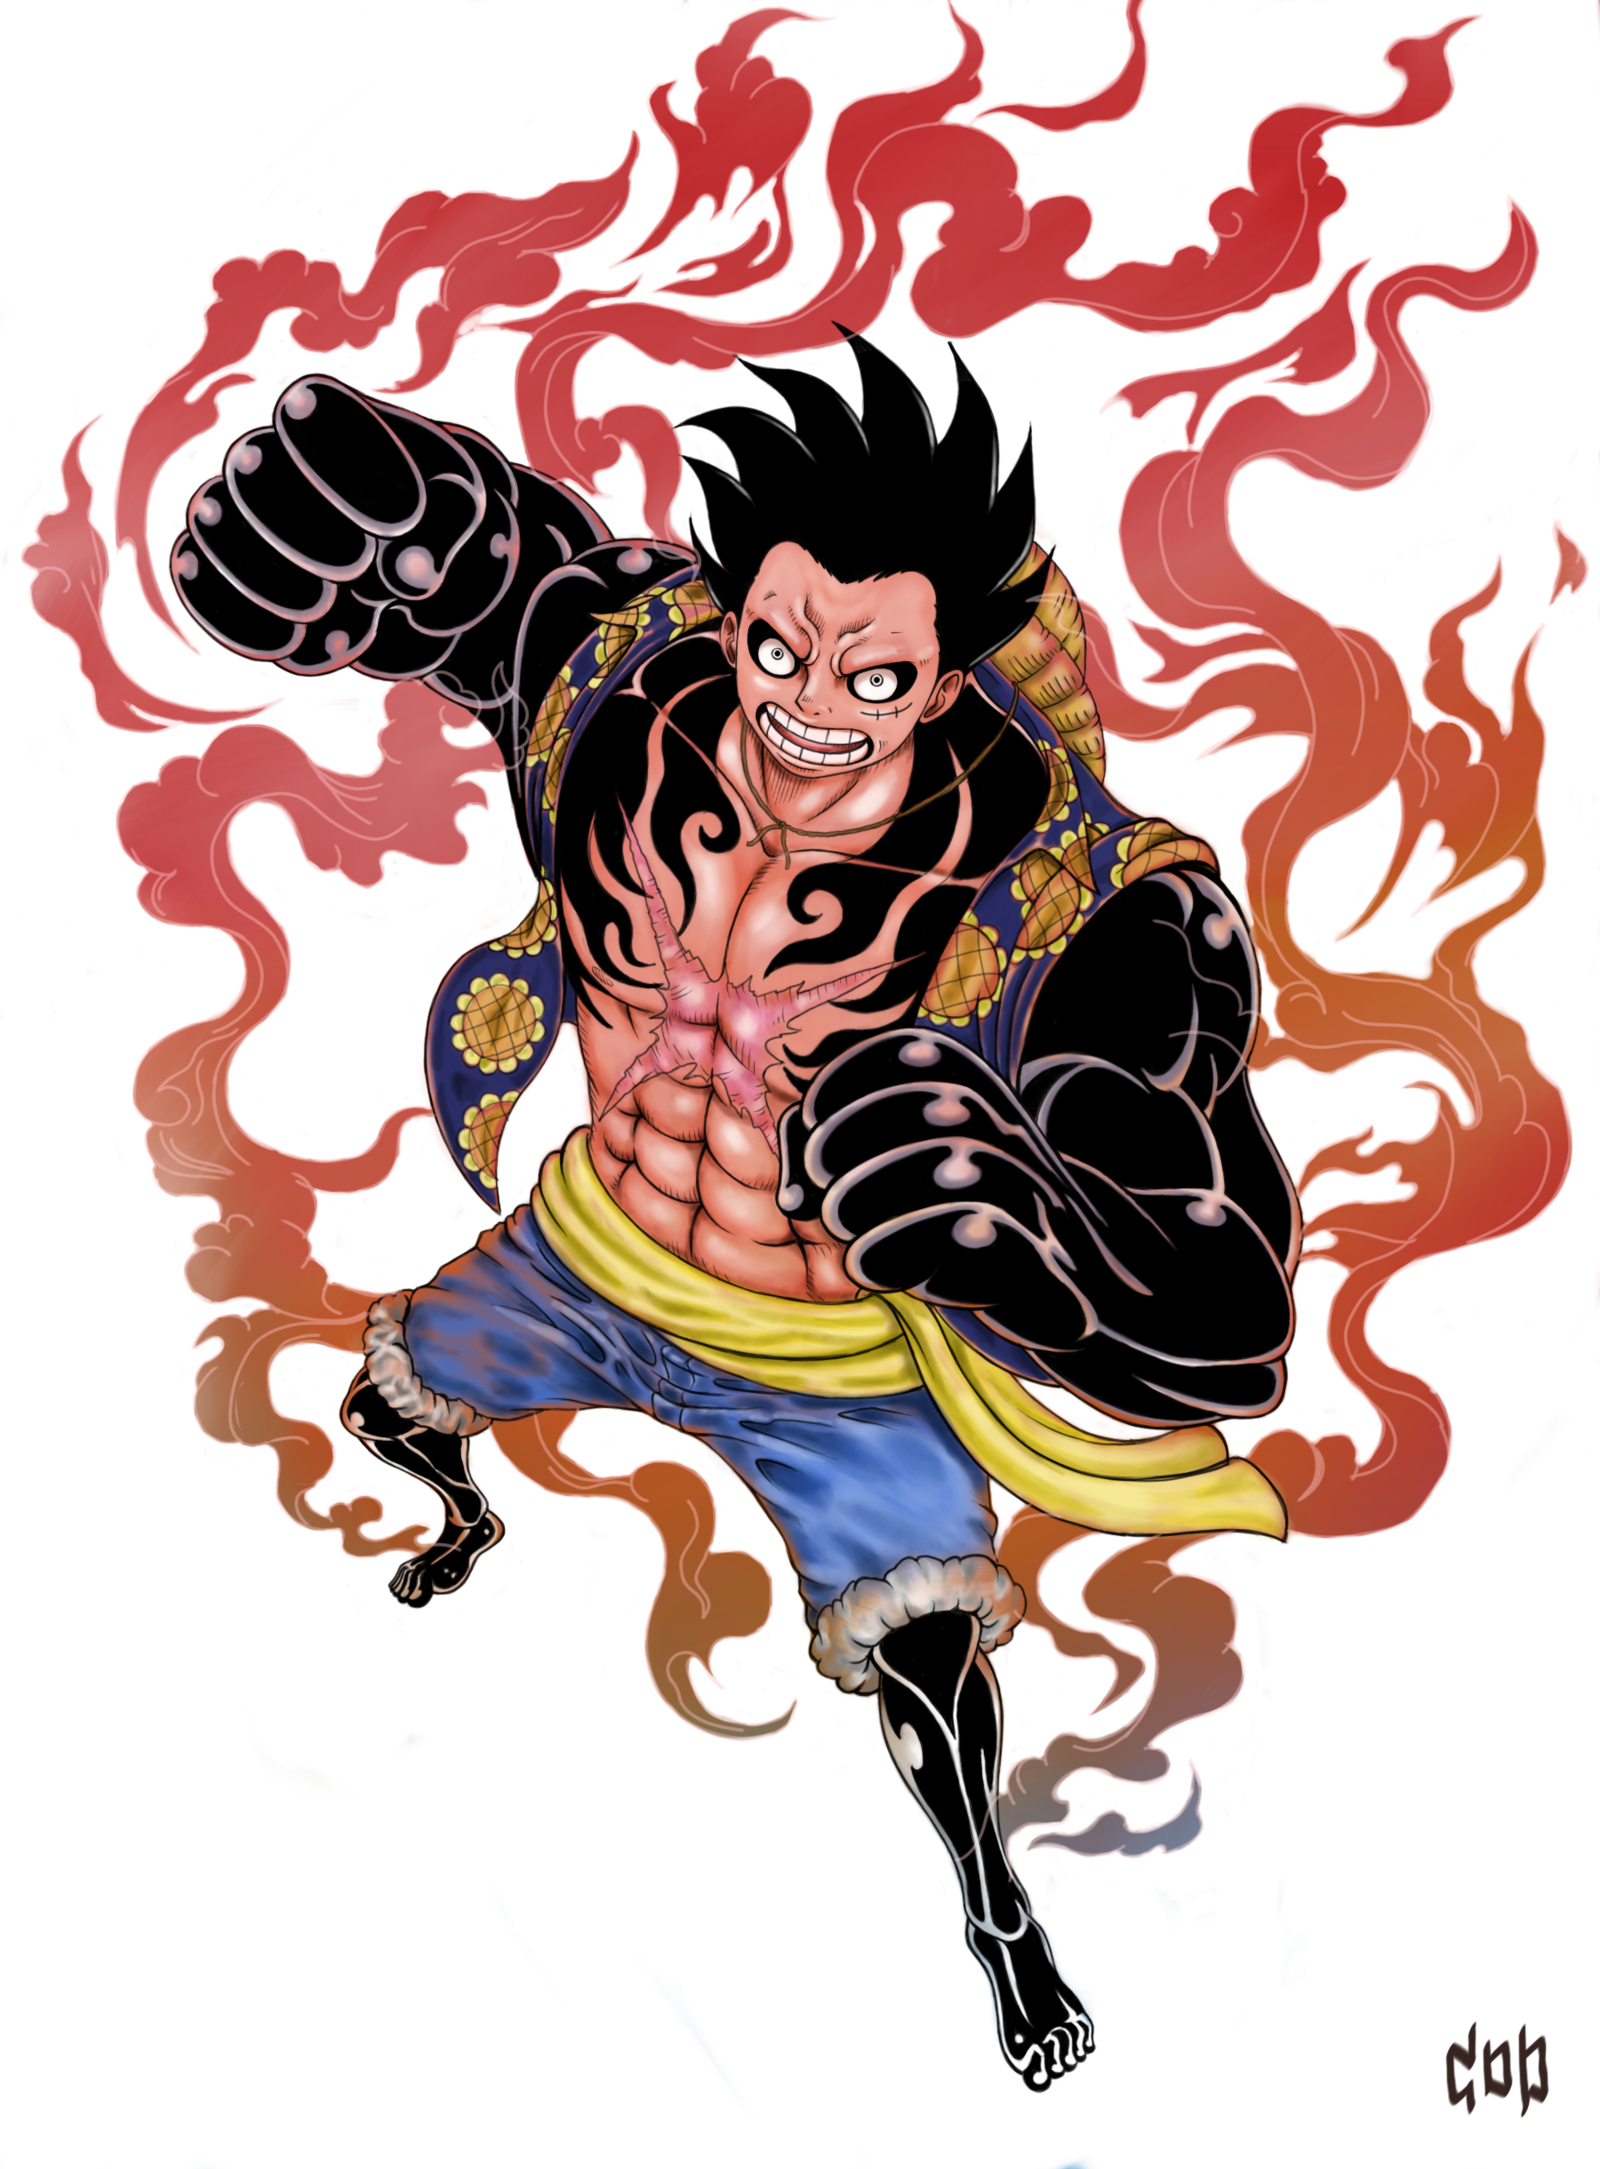 Pin By Voor On Animes Luffy Gear 4 Monkey D Luffy Luffy